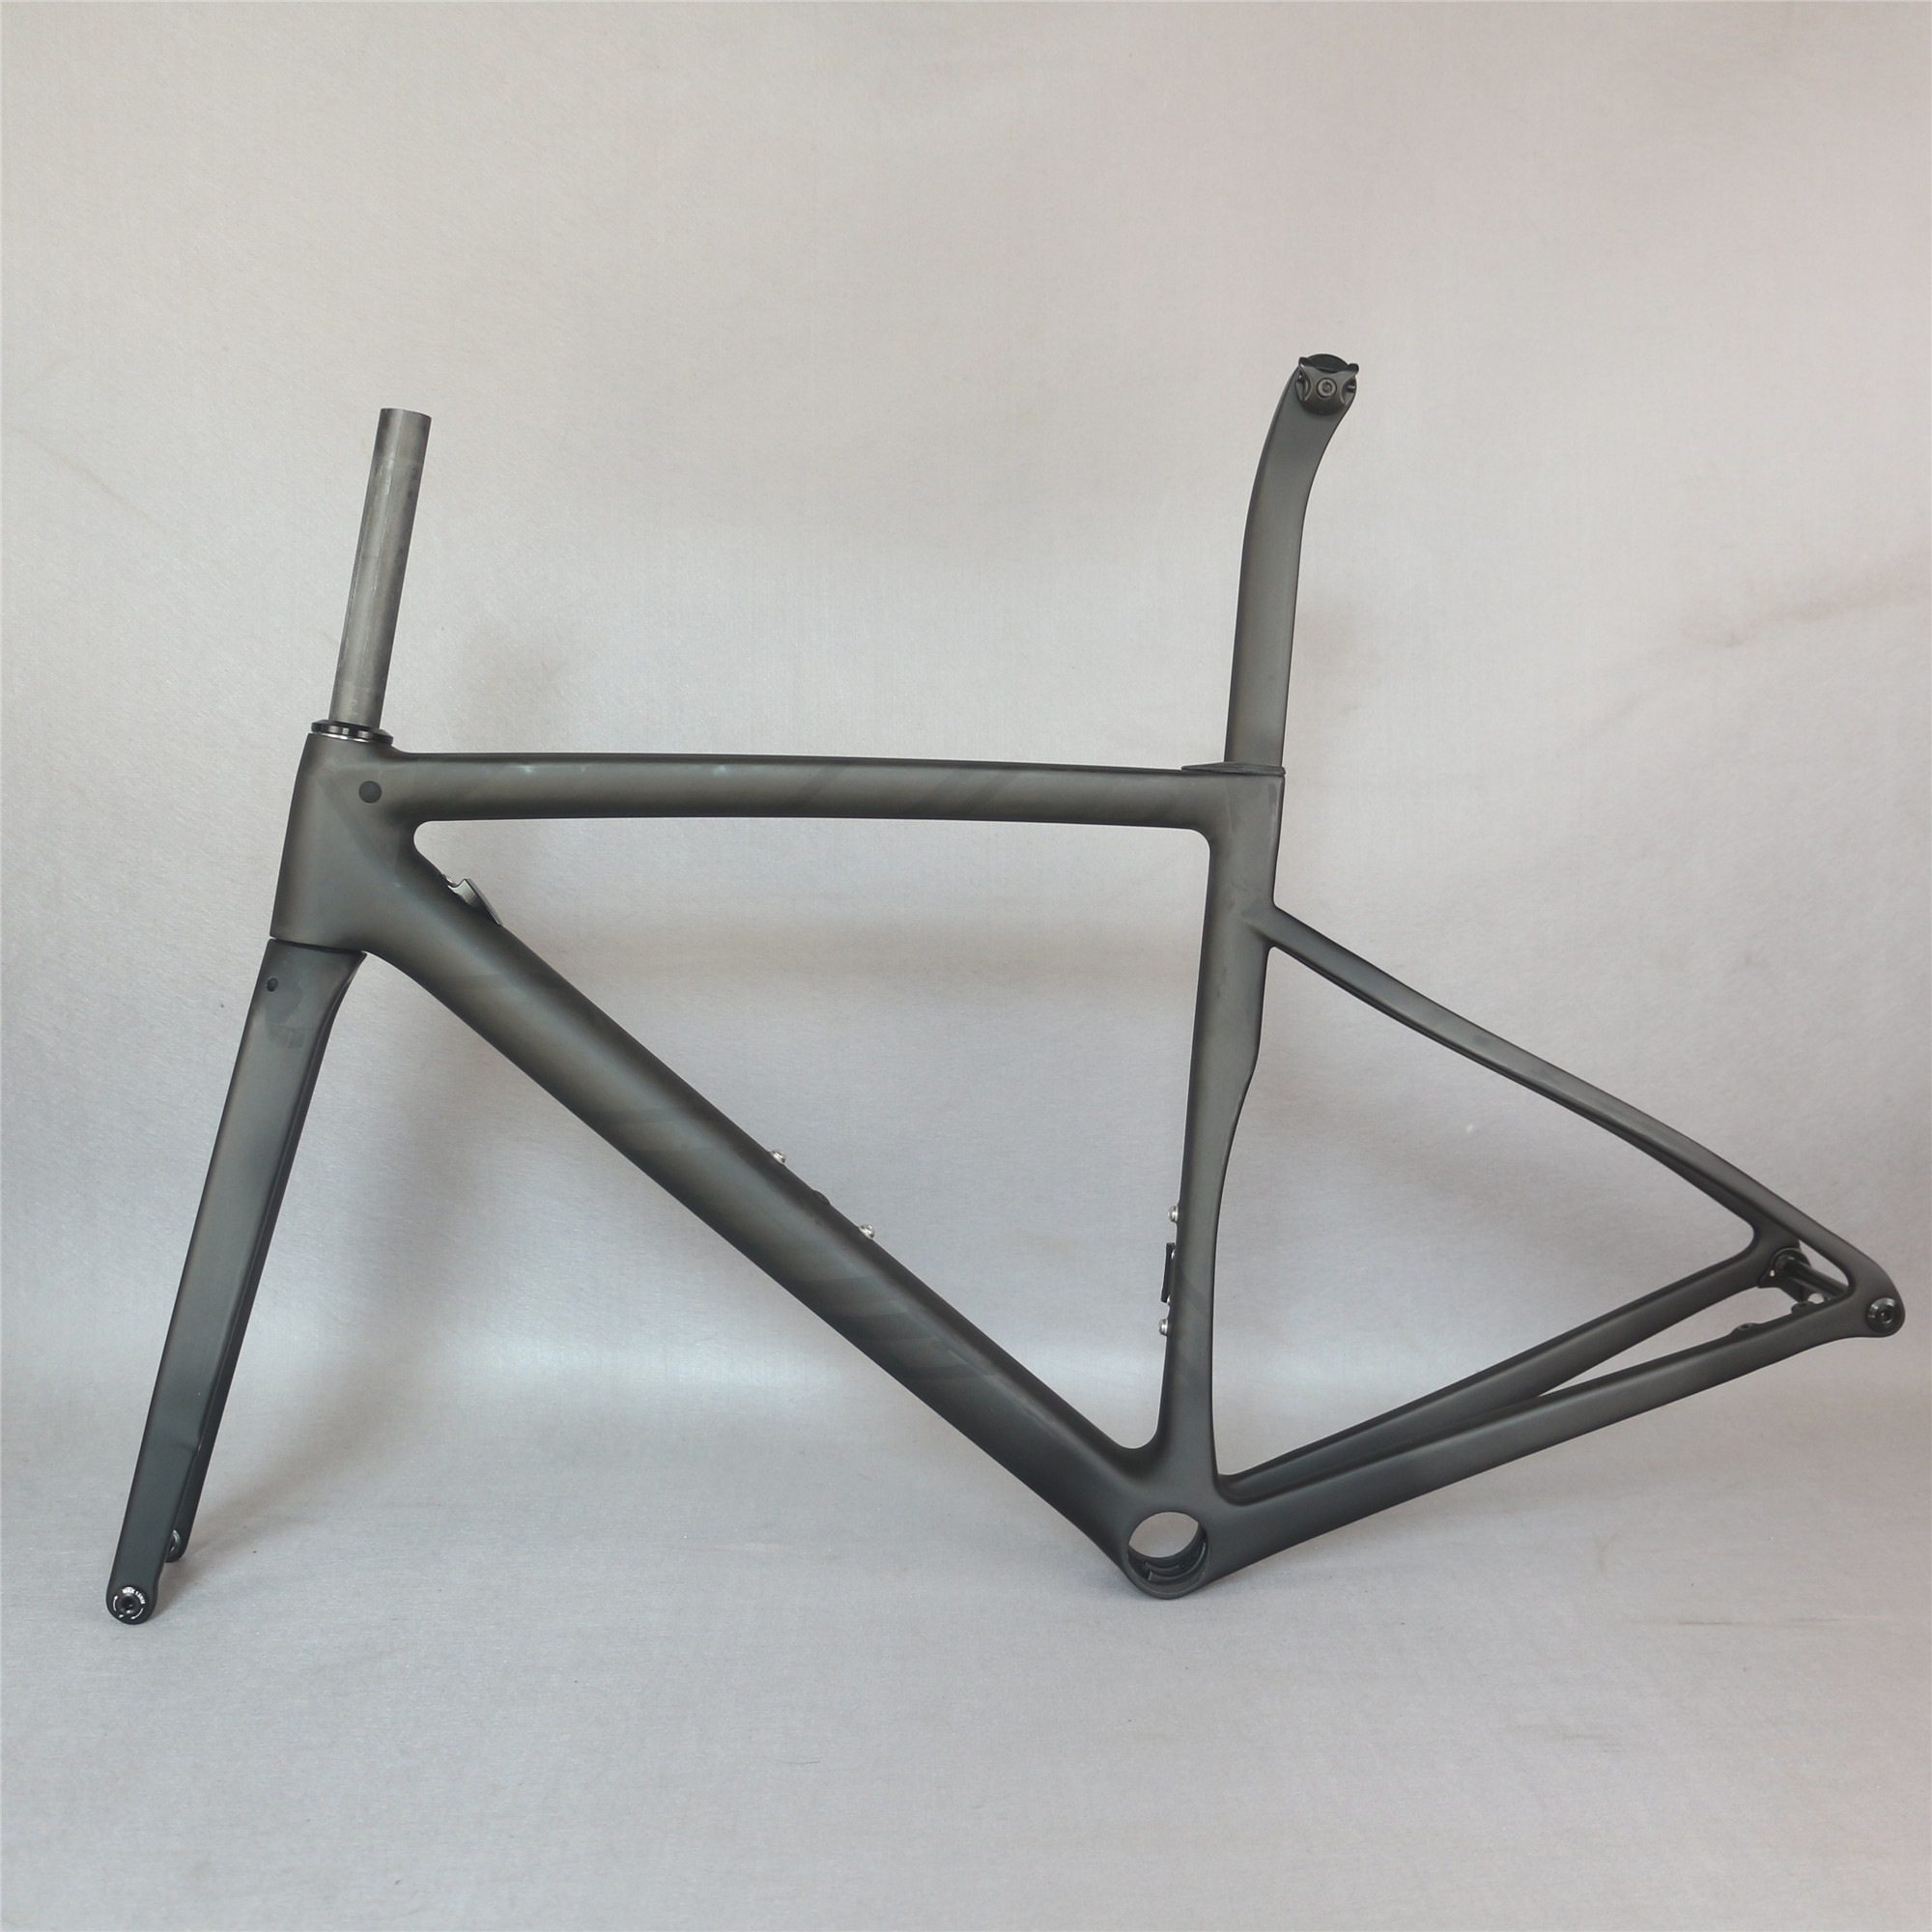 Disc Road Bike Frame TT-X19 UD Matte PF30 Bottom Bracket  44/49/52/54/56/58cm Size Available